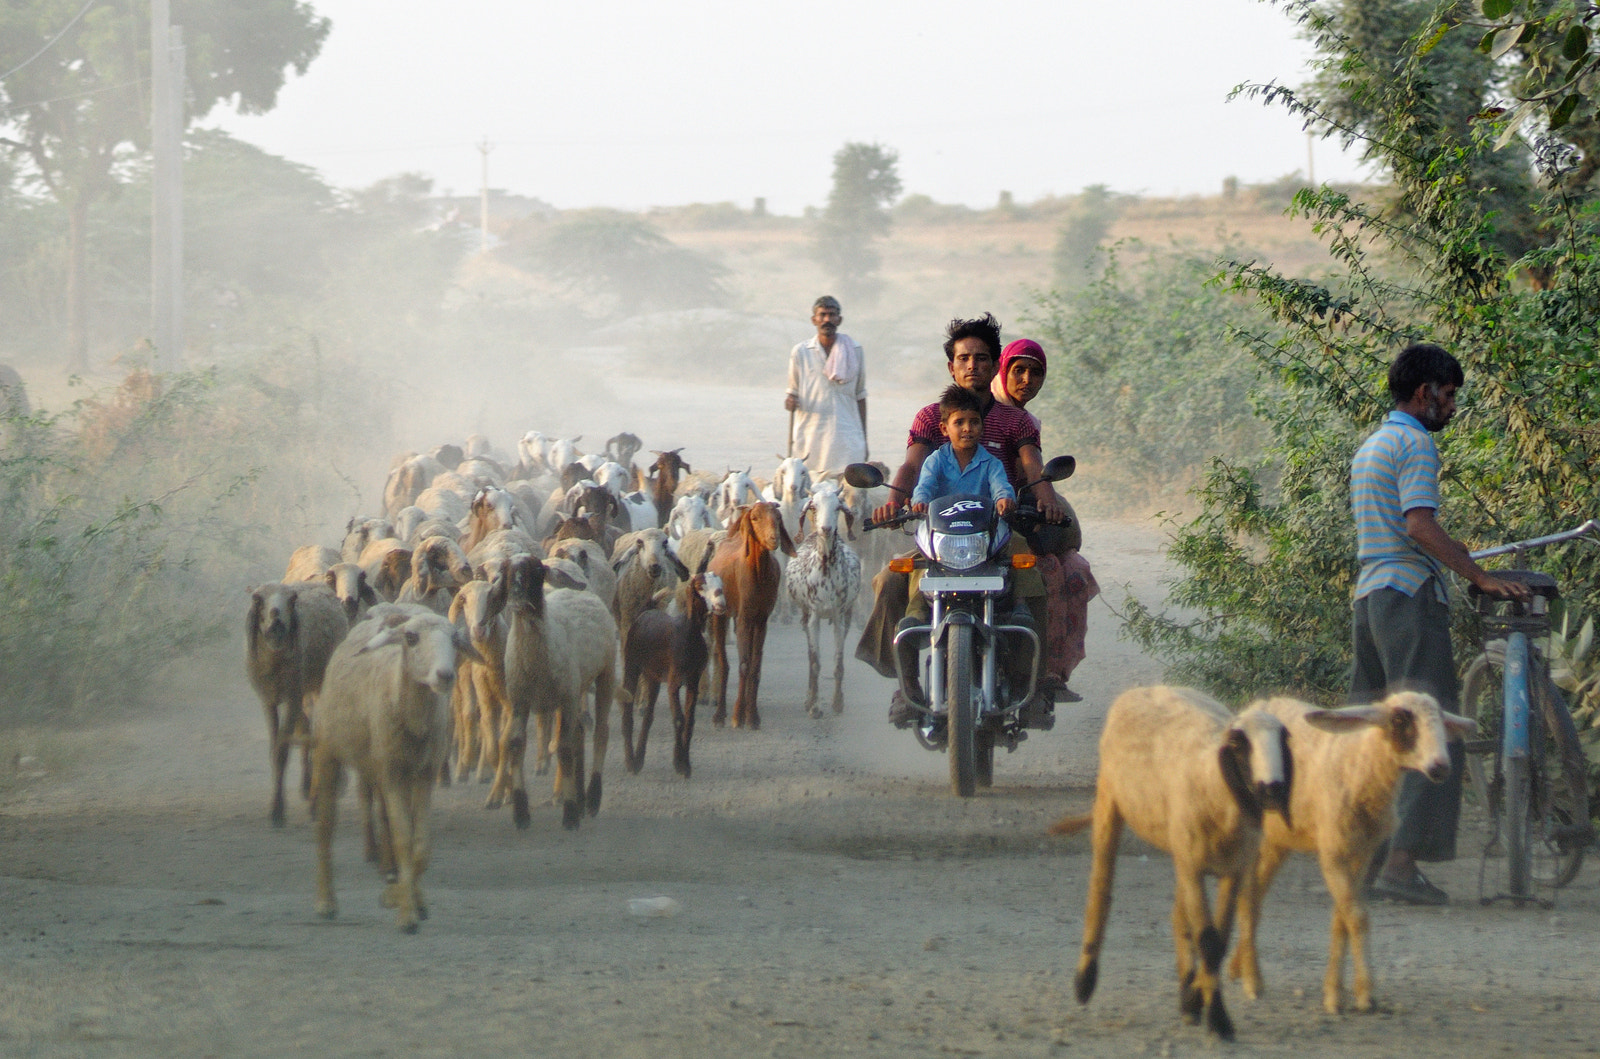 Photograph Going Home by saptak ganguly on 500px